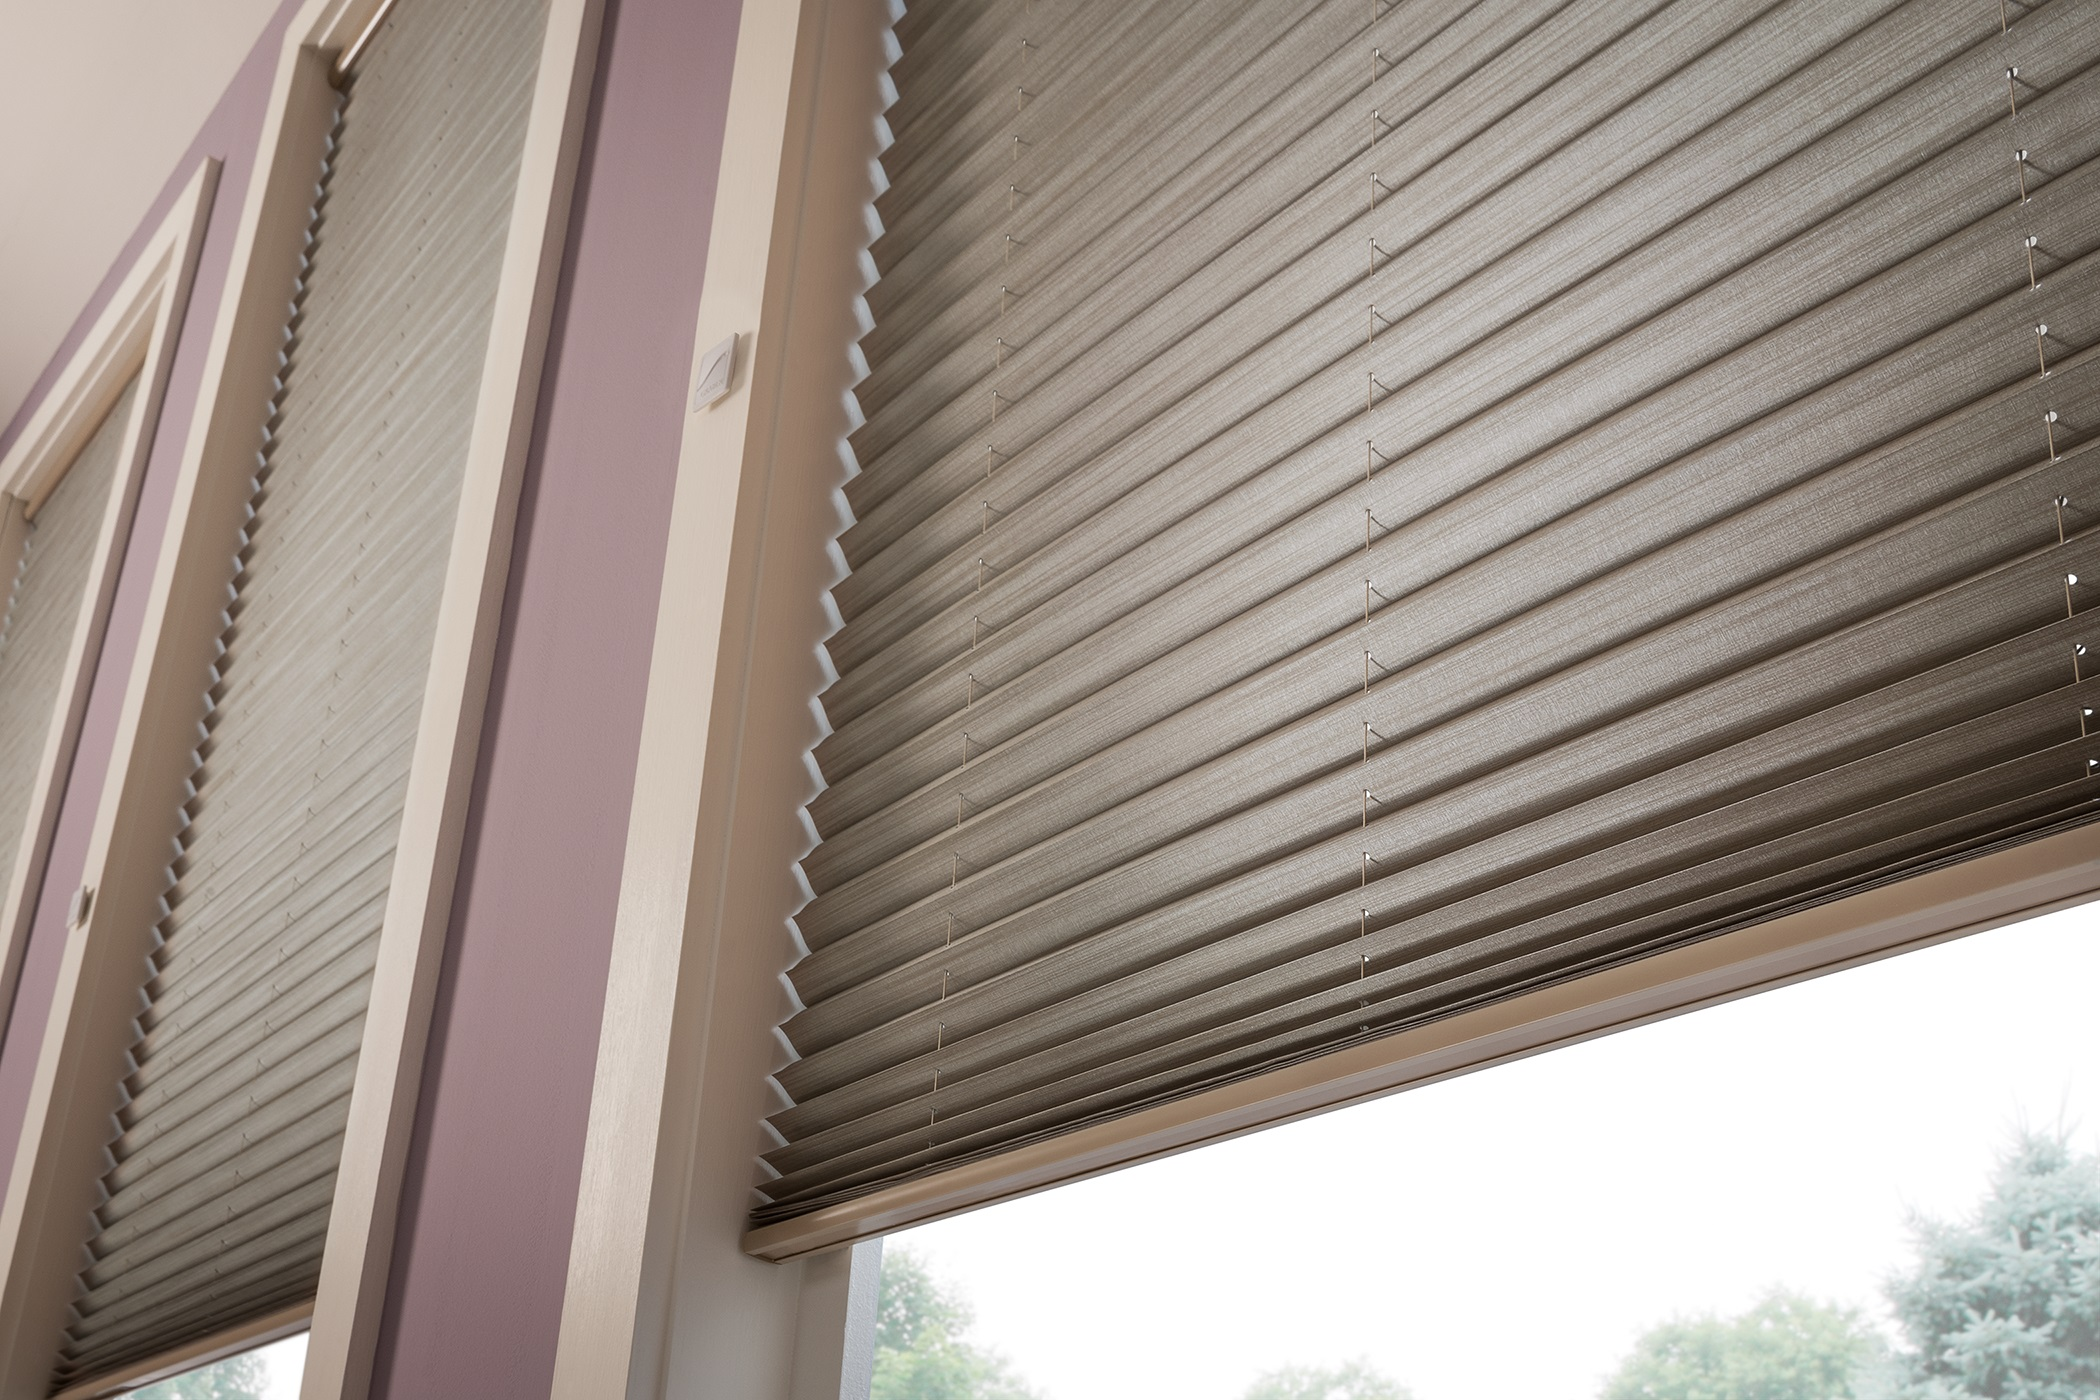 Pleated Shades feature the most up-to-date textiles from a broad spectrum of colors, patterns, and textures, all folded into crisp pleats. It's a sophisticated and modern look that also filters the light and extends privacy protection to your home.